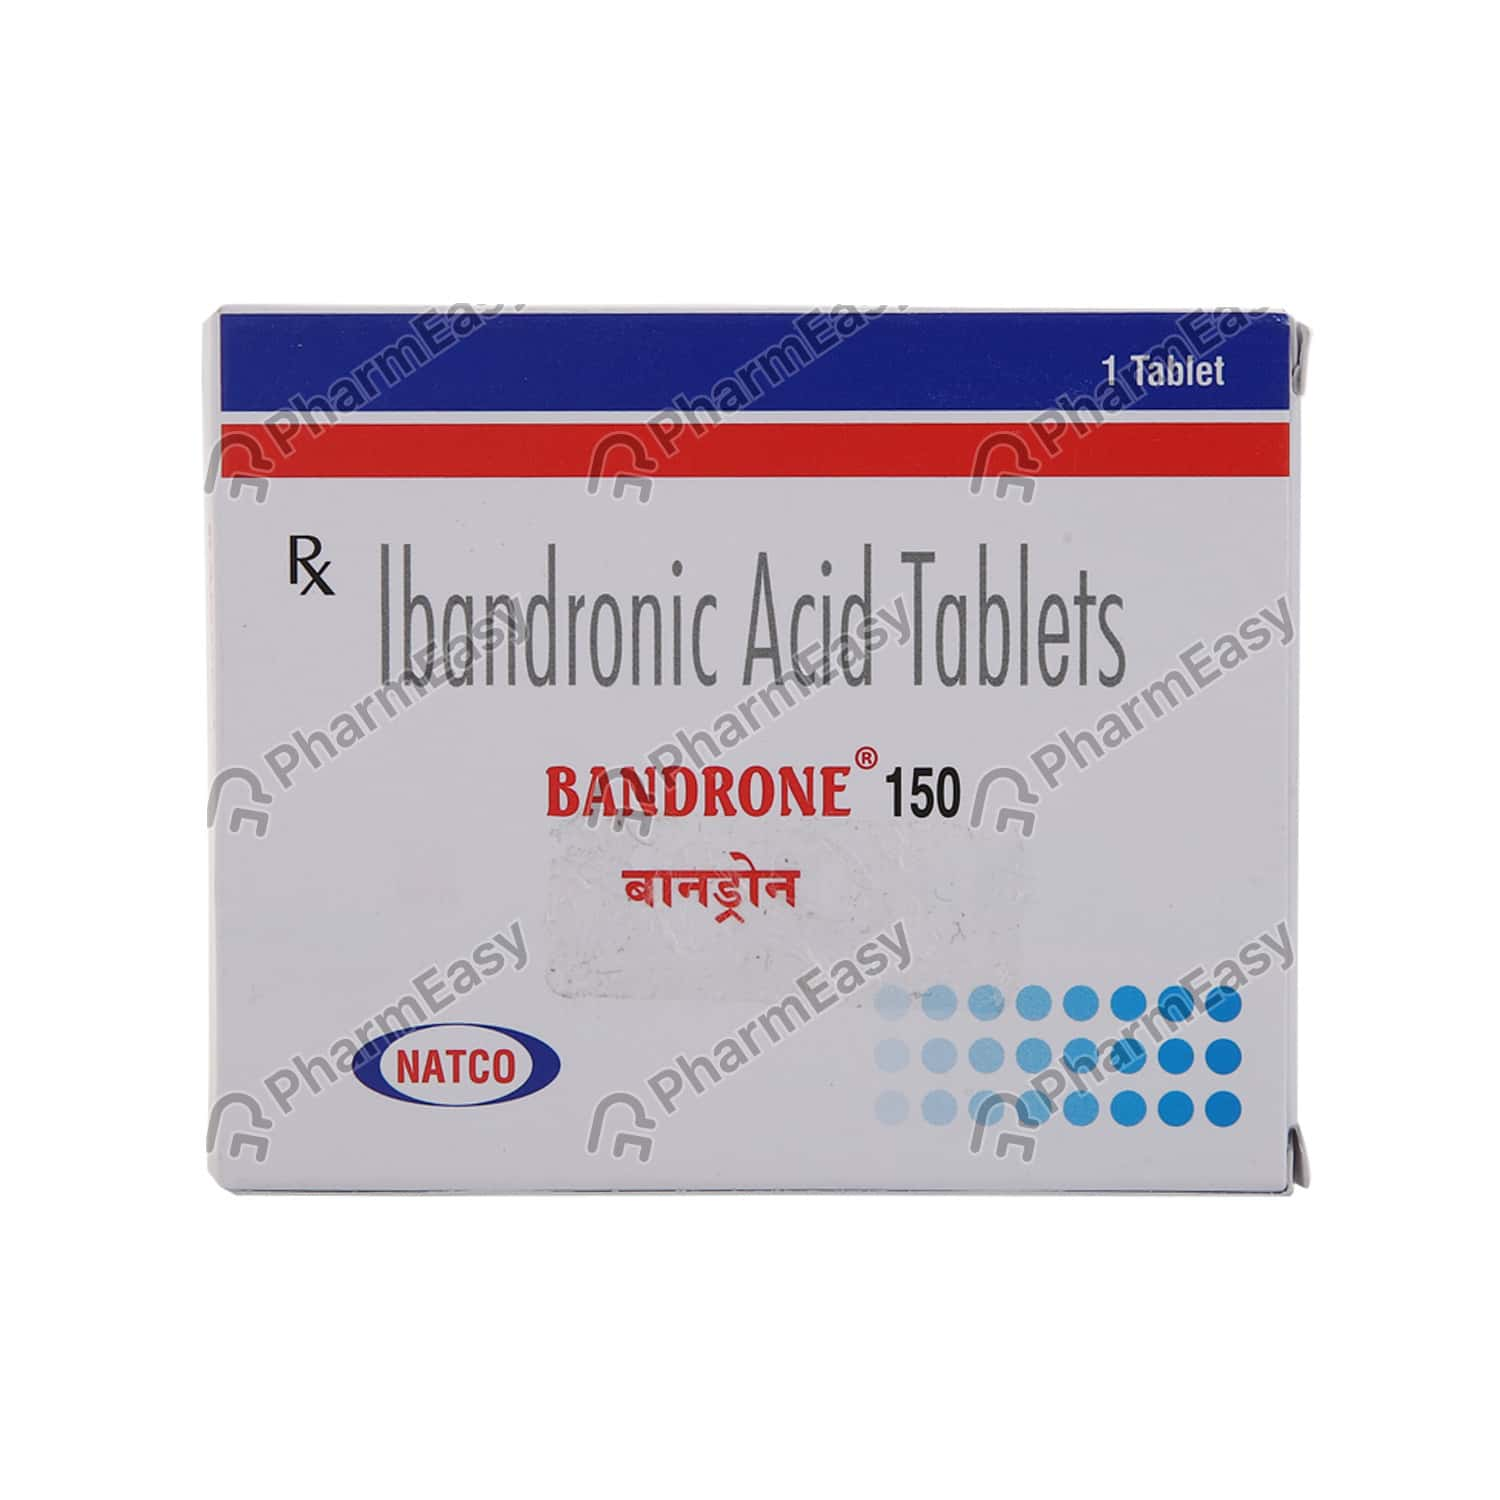 Bandrone 150mg Strip Of 1 Tablets